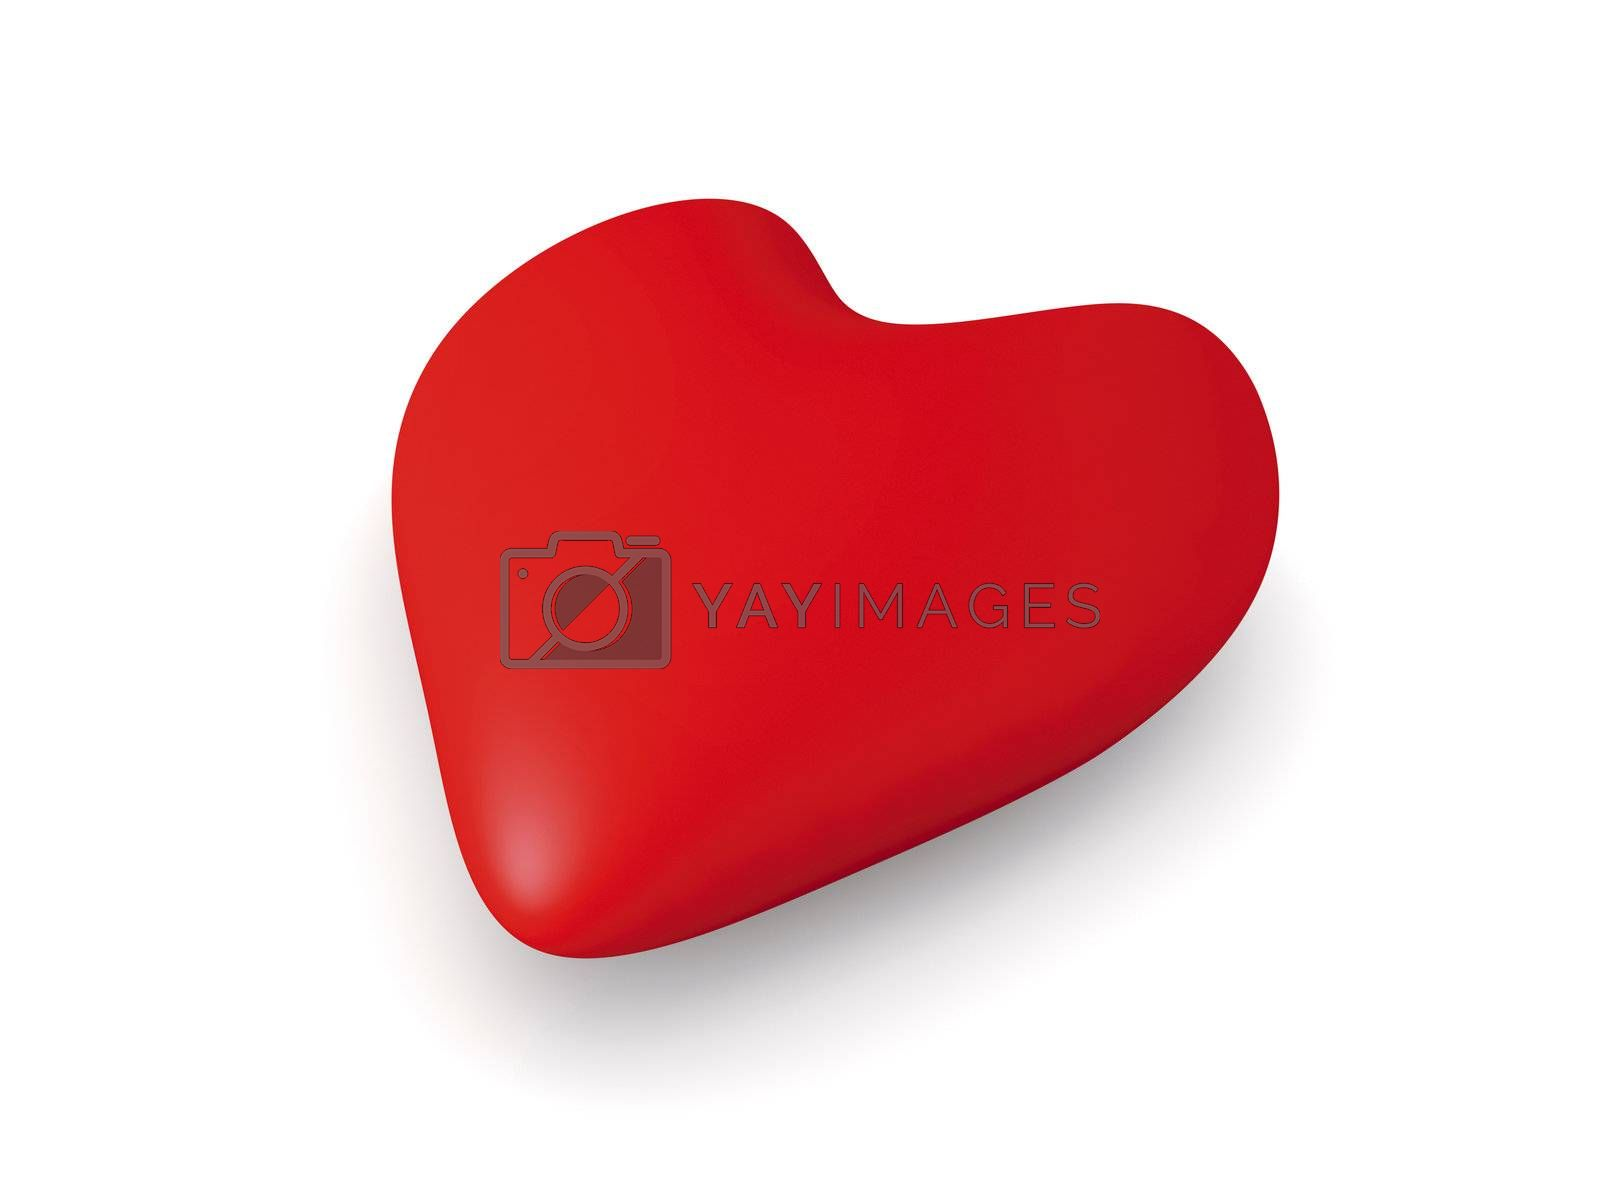 3D Illustration. 3D rendered Heart Shape.